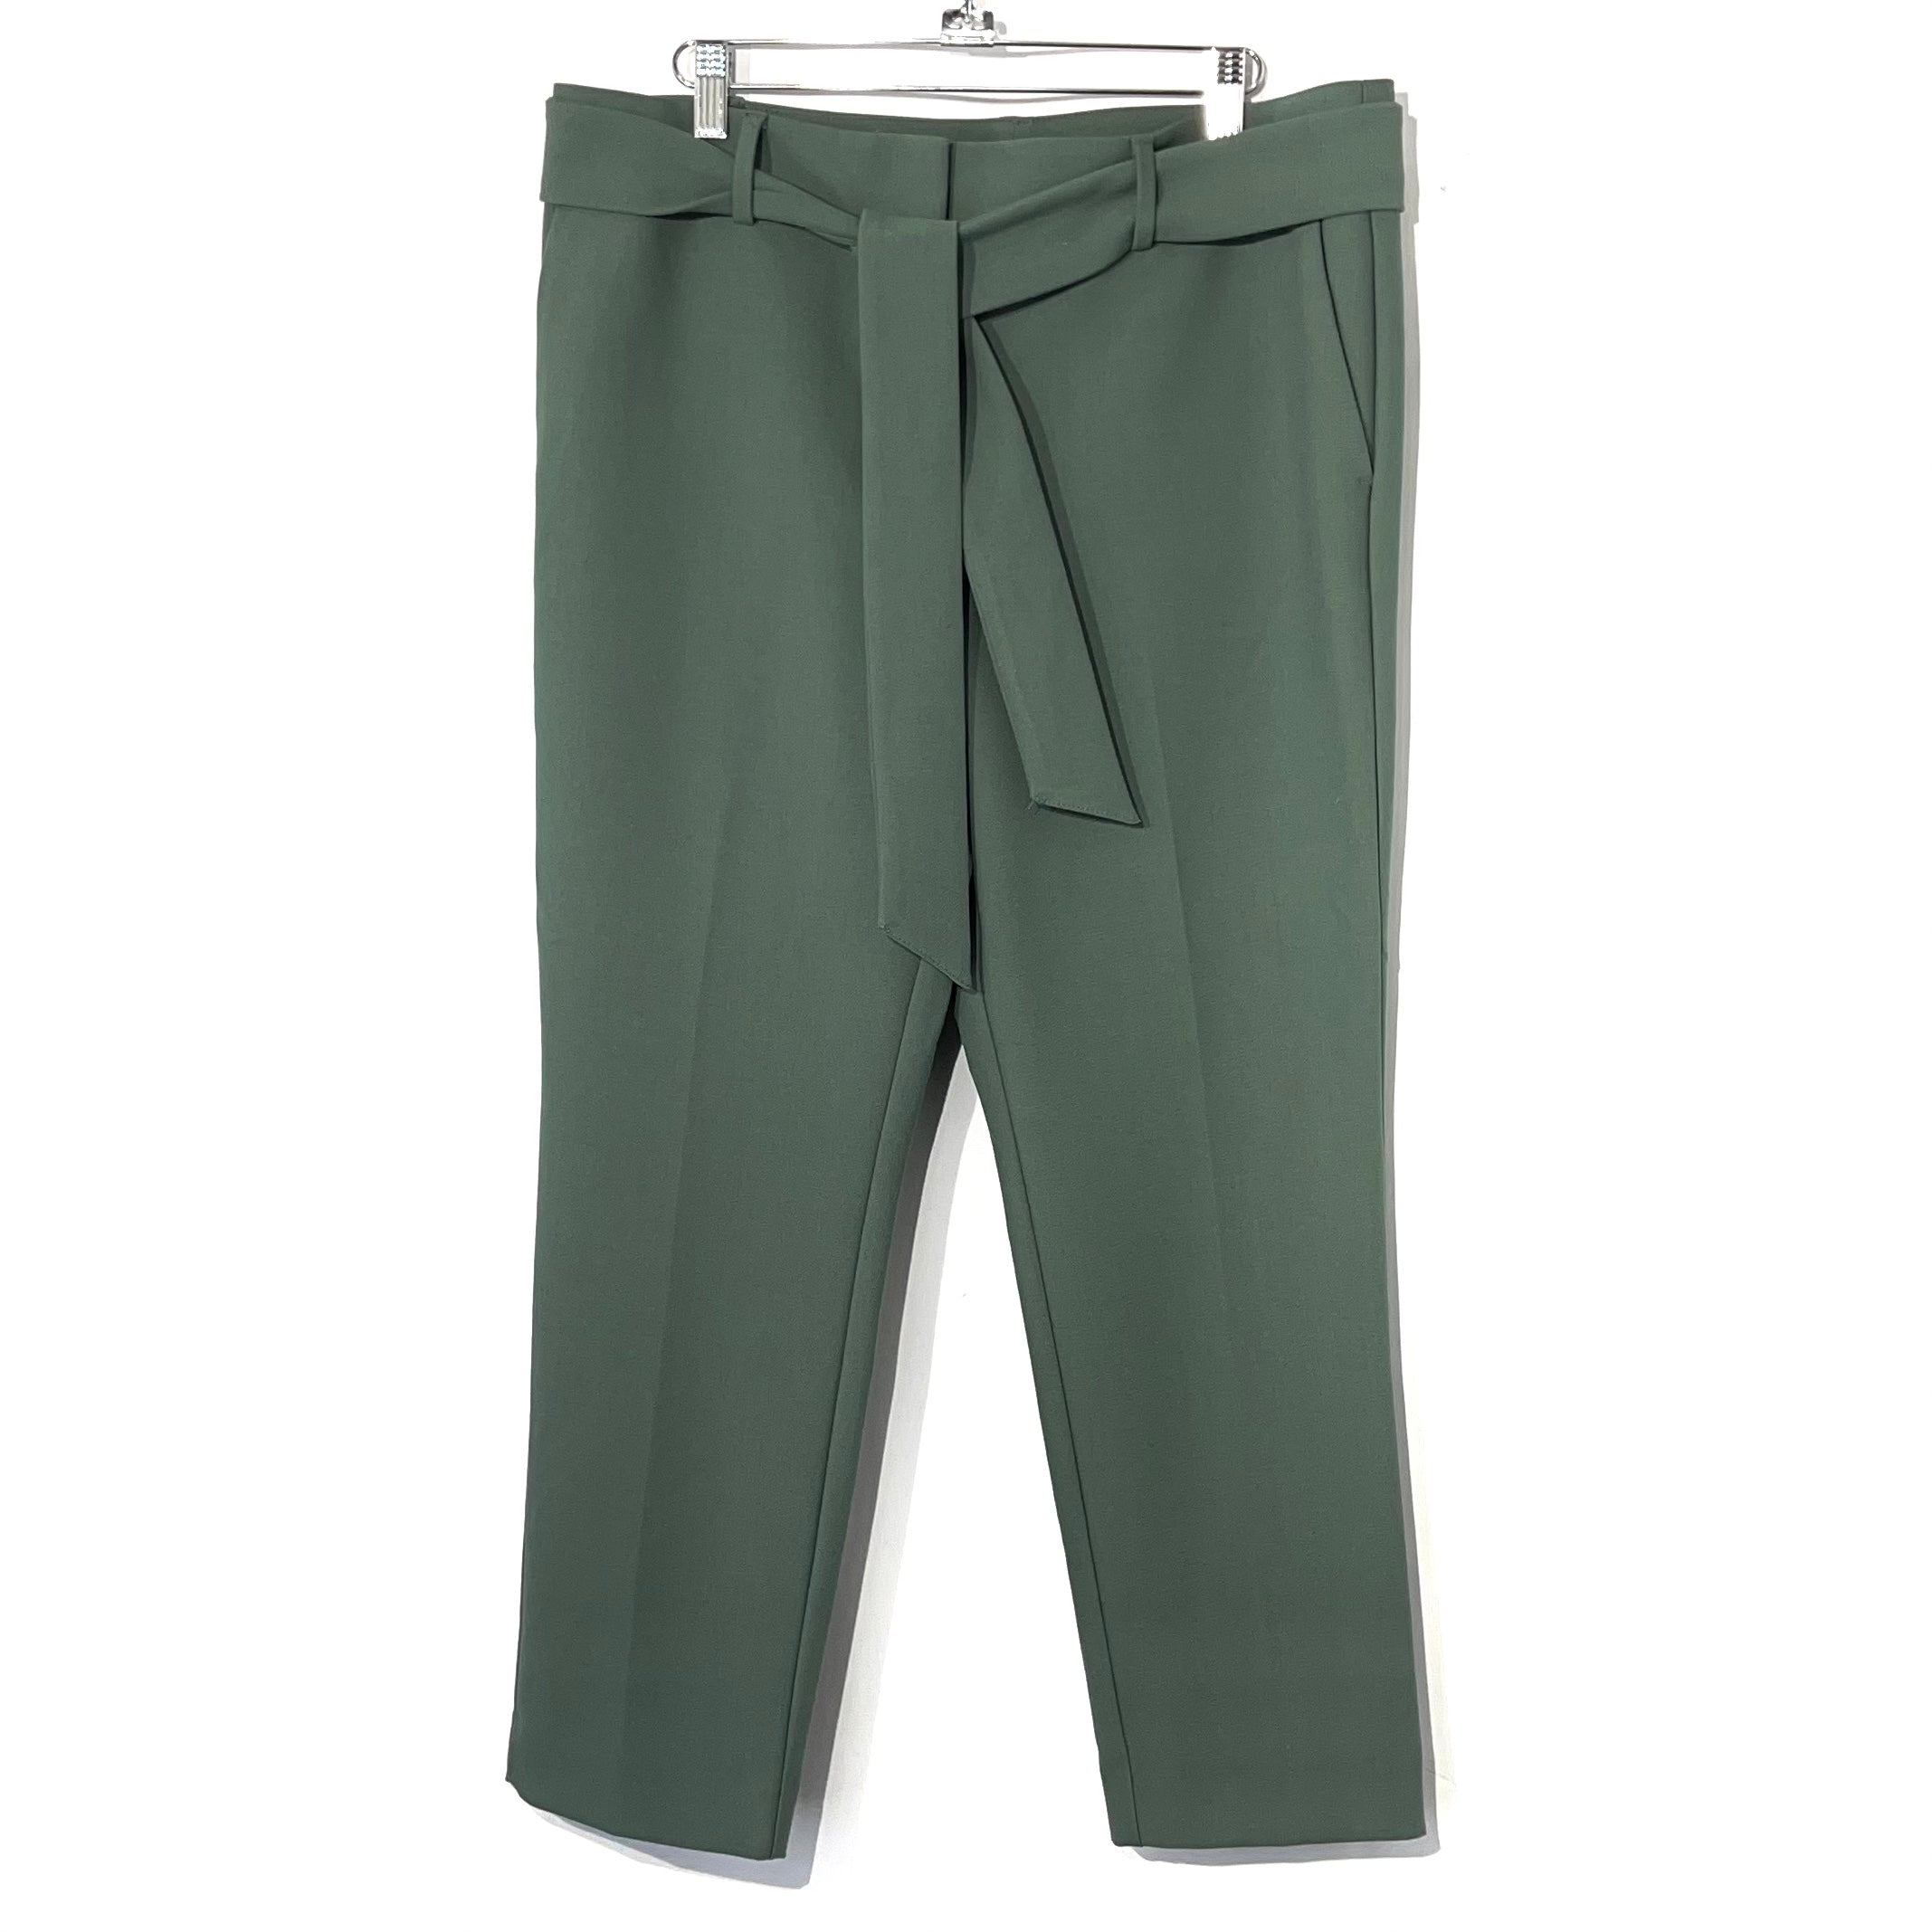 Primary Photo - BRAND: ANN TAYLOR LOFT <BR>STYLE: PANTS <BR>COLOR: OLIVE <BR>SIZE: 12 P<BR>SKU: 262-26275-74293